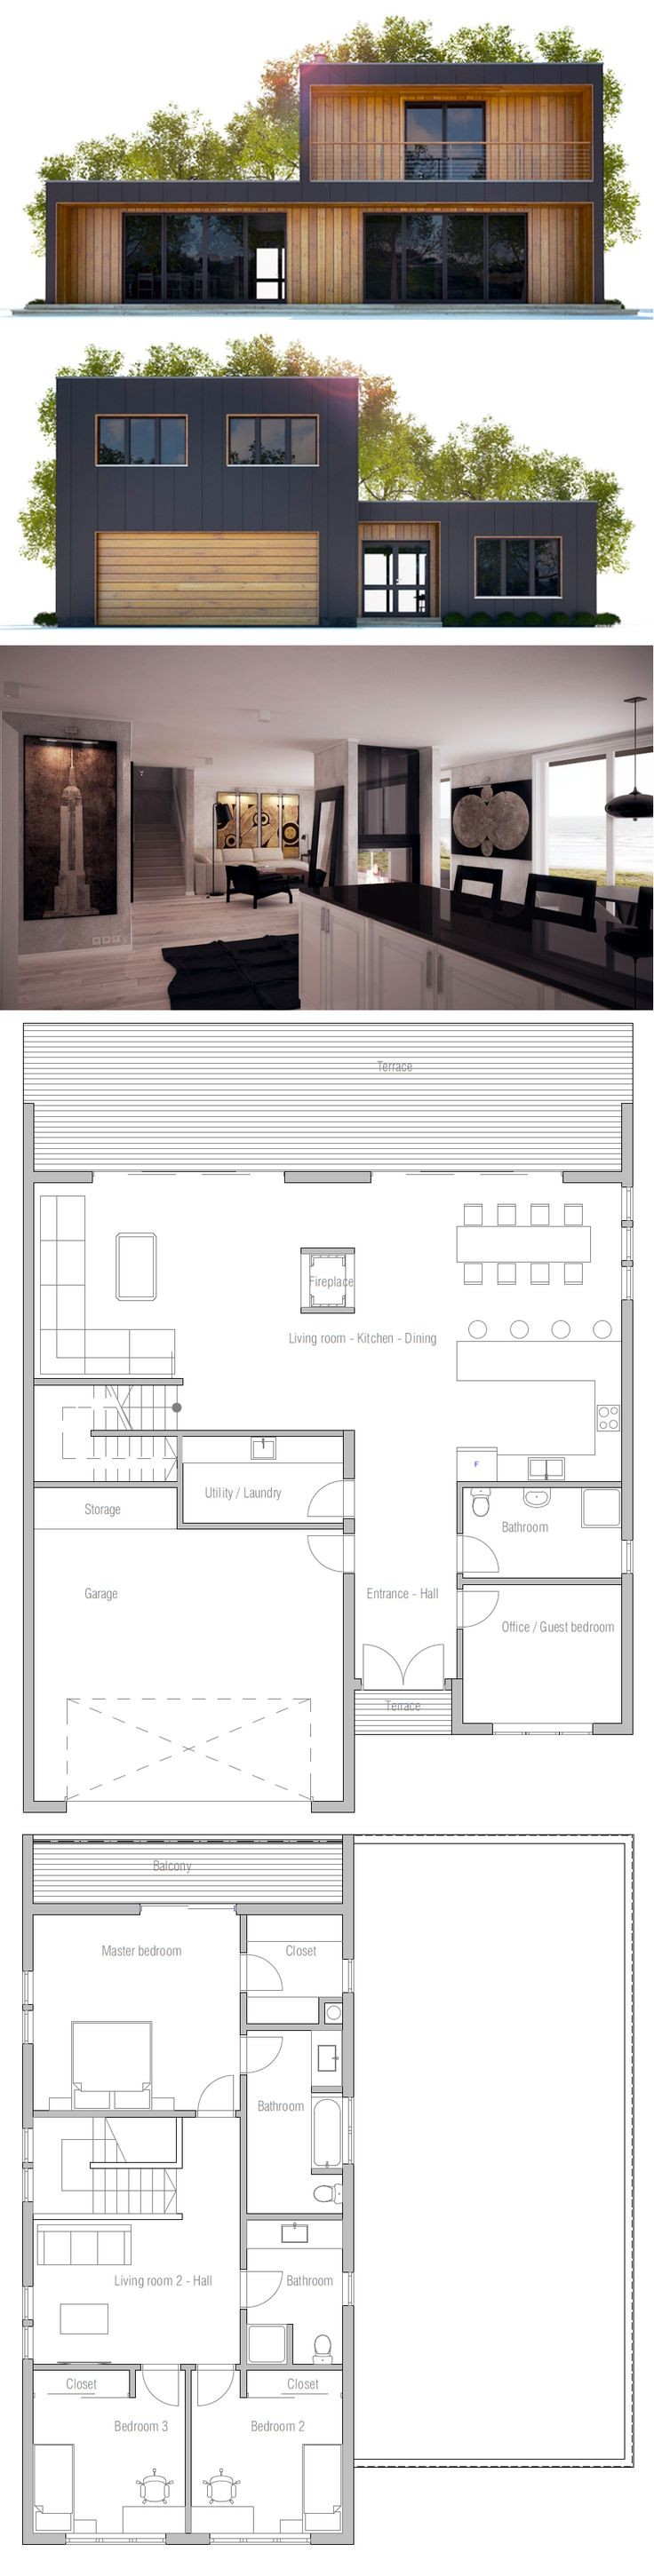 Container House   House Plan  Distribución U2026   Who Else Wants Simple  Step By Step Plans To Design And Build A Container Home From Scratch?